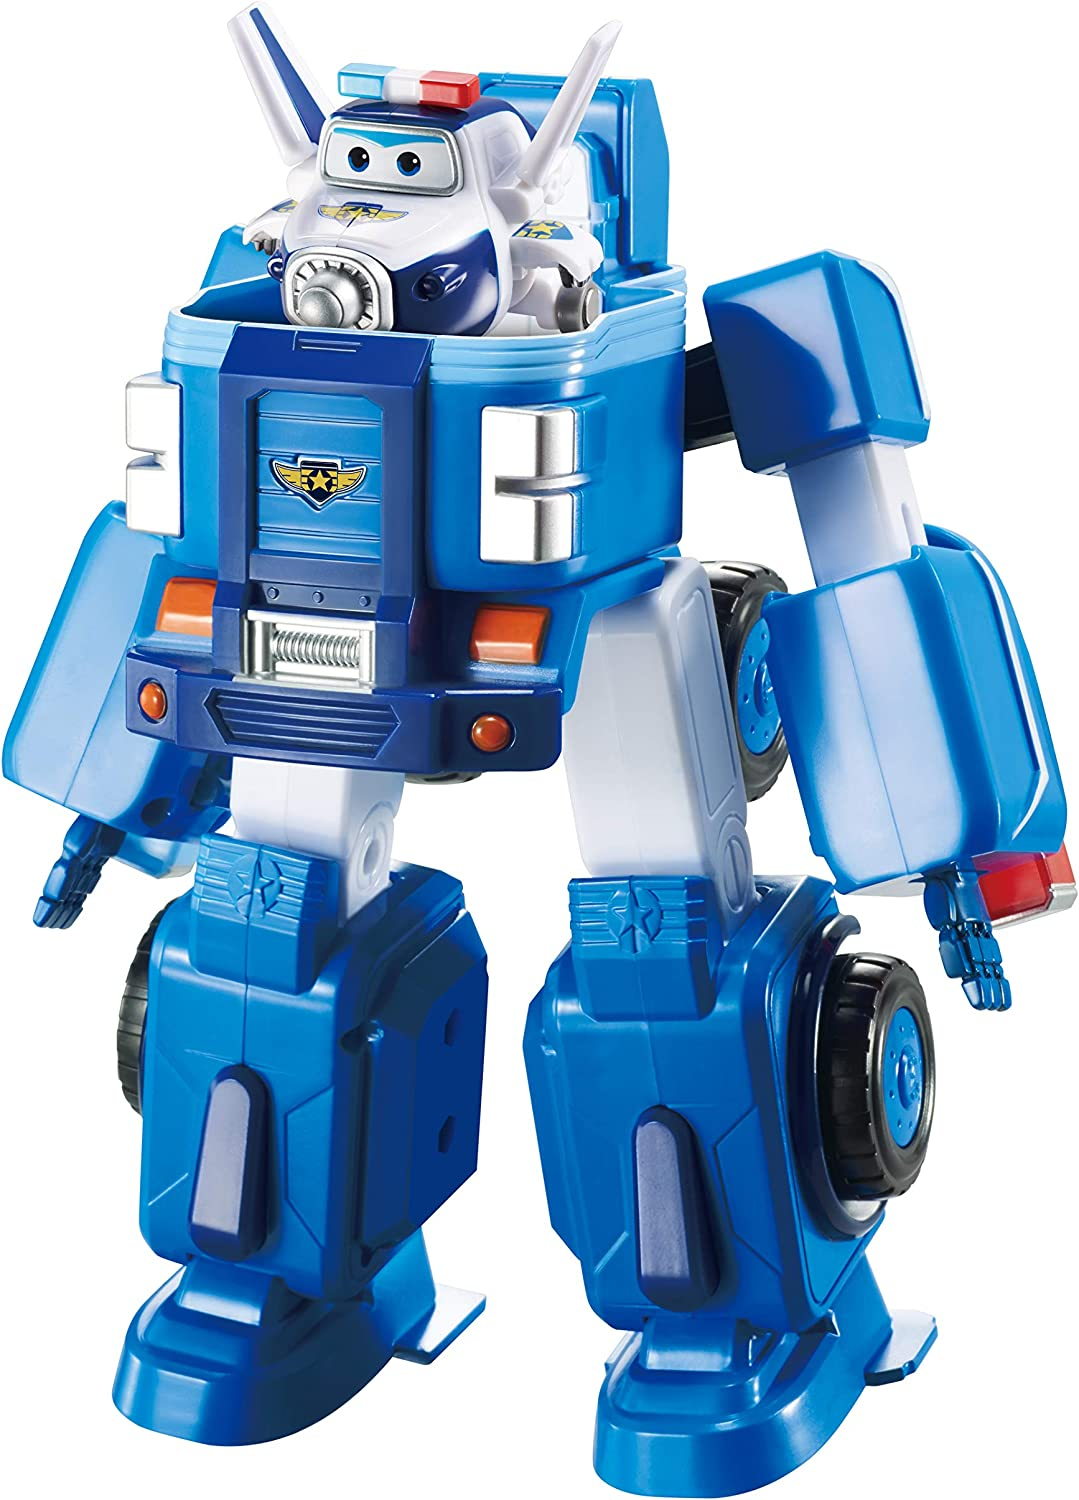 Deluxe Transforming VehicleSeries 2JettPlane and Bot Super Wings